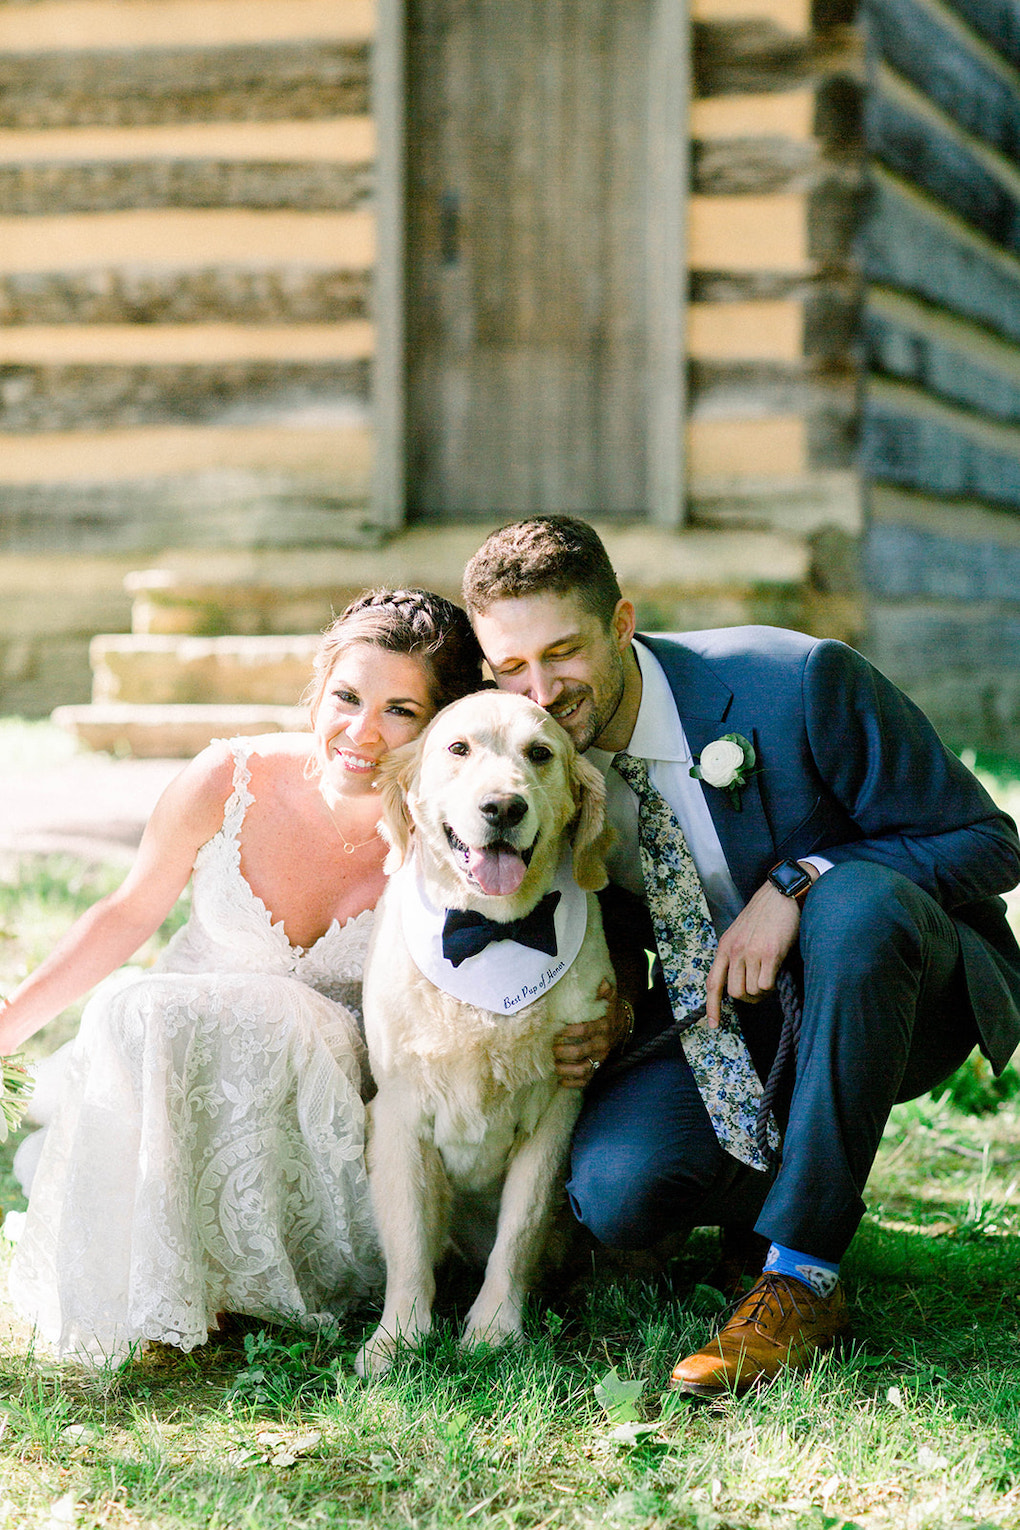 Including Your Dog In Your Wedding Day: Pittsburgh Botanic Garden wedding planned by Exhale Events. See more wedding inspiration at exhale-events.com!